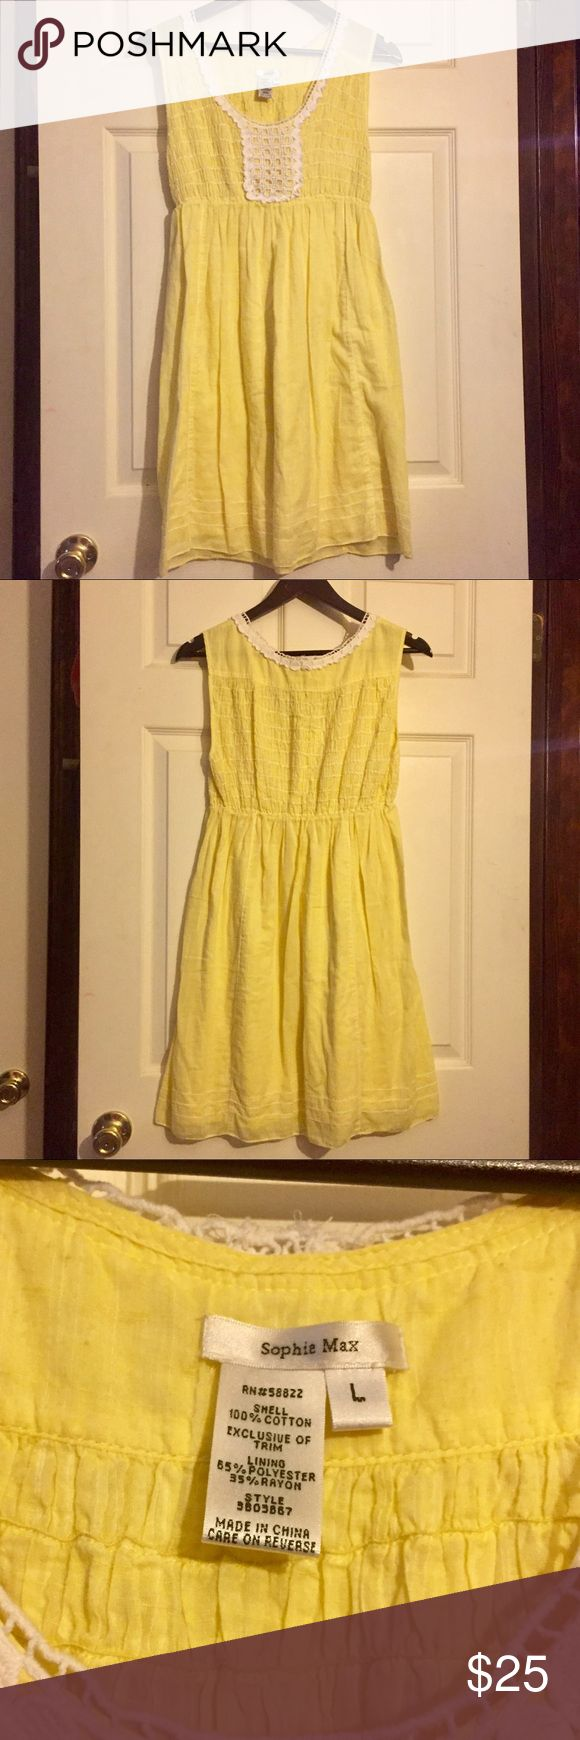 """Sophie Max Dress Sz L Worn once and in excellent condition!  Cute Sophie Max yellow cotton dress Sz L.  Fully lined.  Length measures 34"""" from top of shoulder to bottom hem.  Smocked must has lots of stretch.  All my items are from a smoke free home and offers are always welcome🛍🌞🛍 Sophie Max Dresses"""